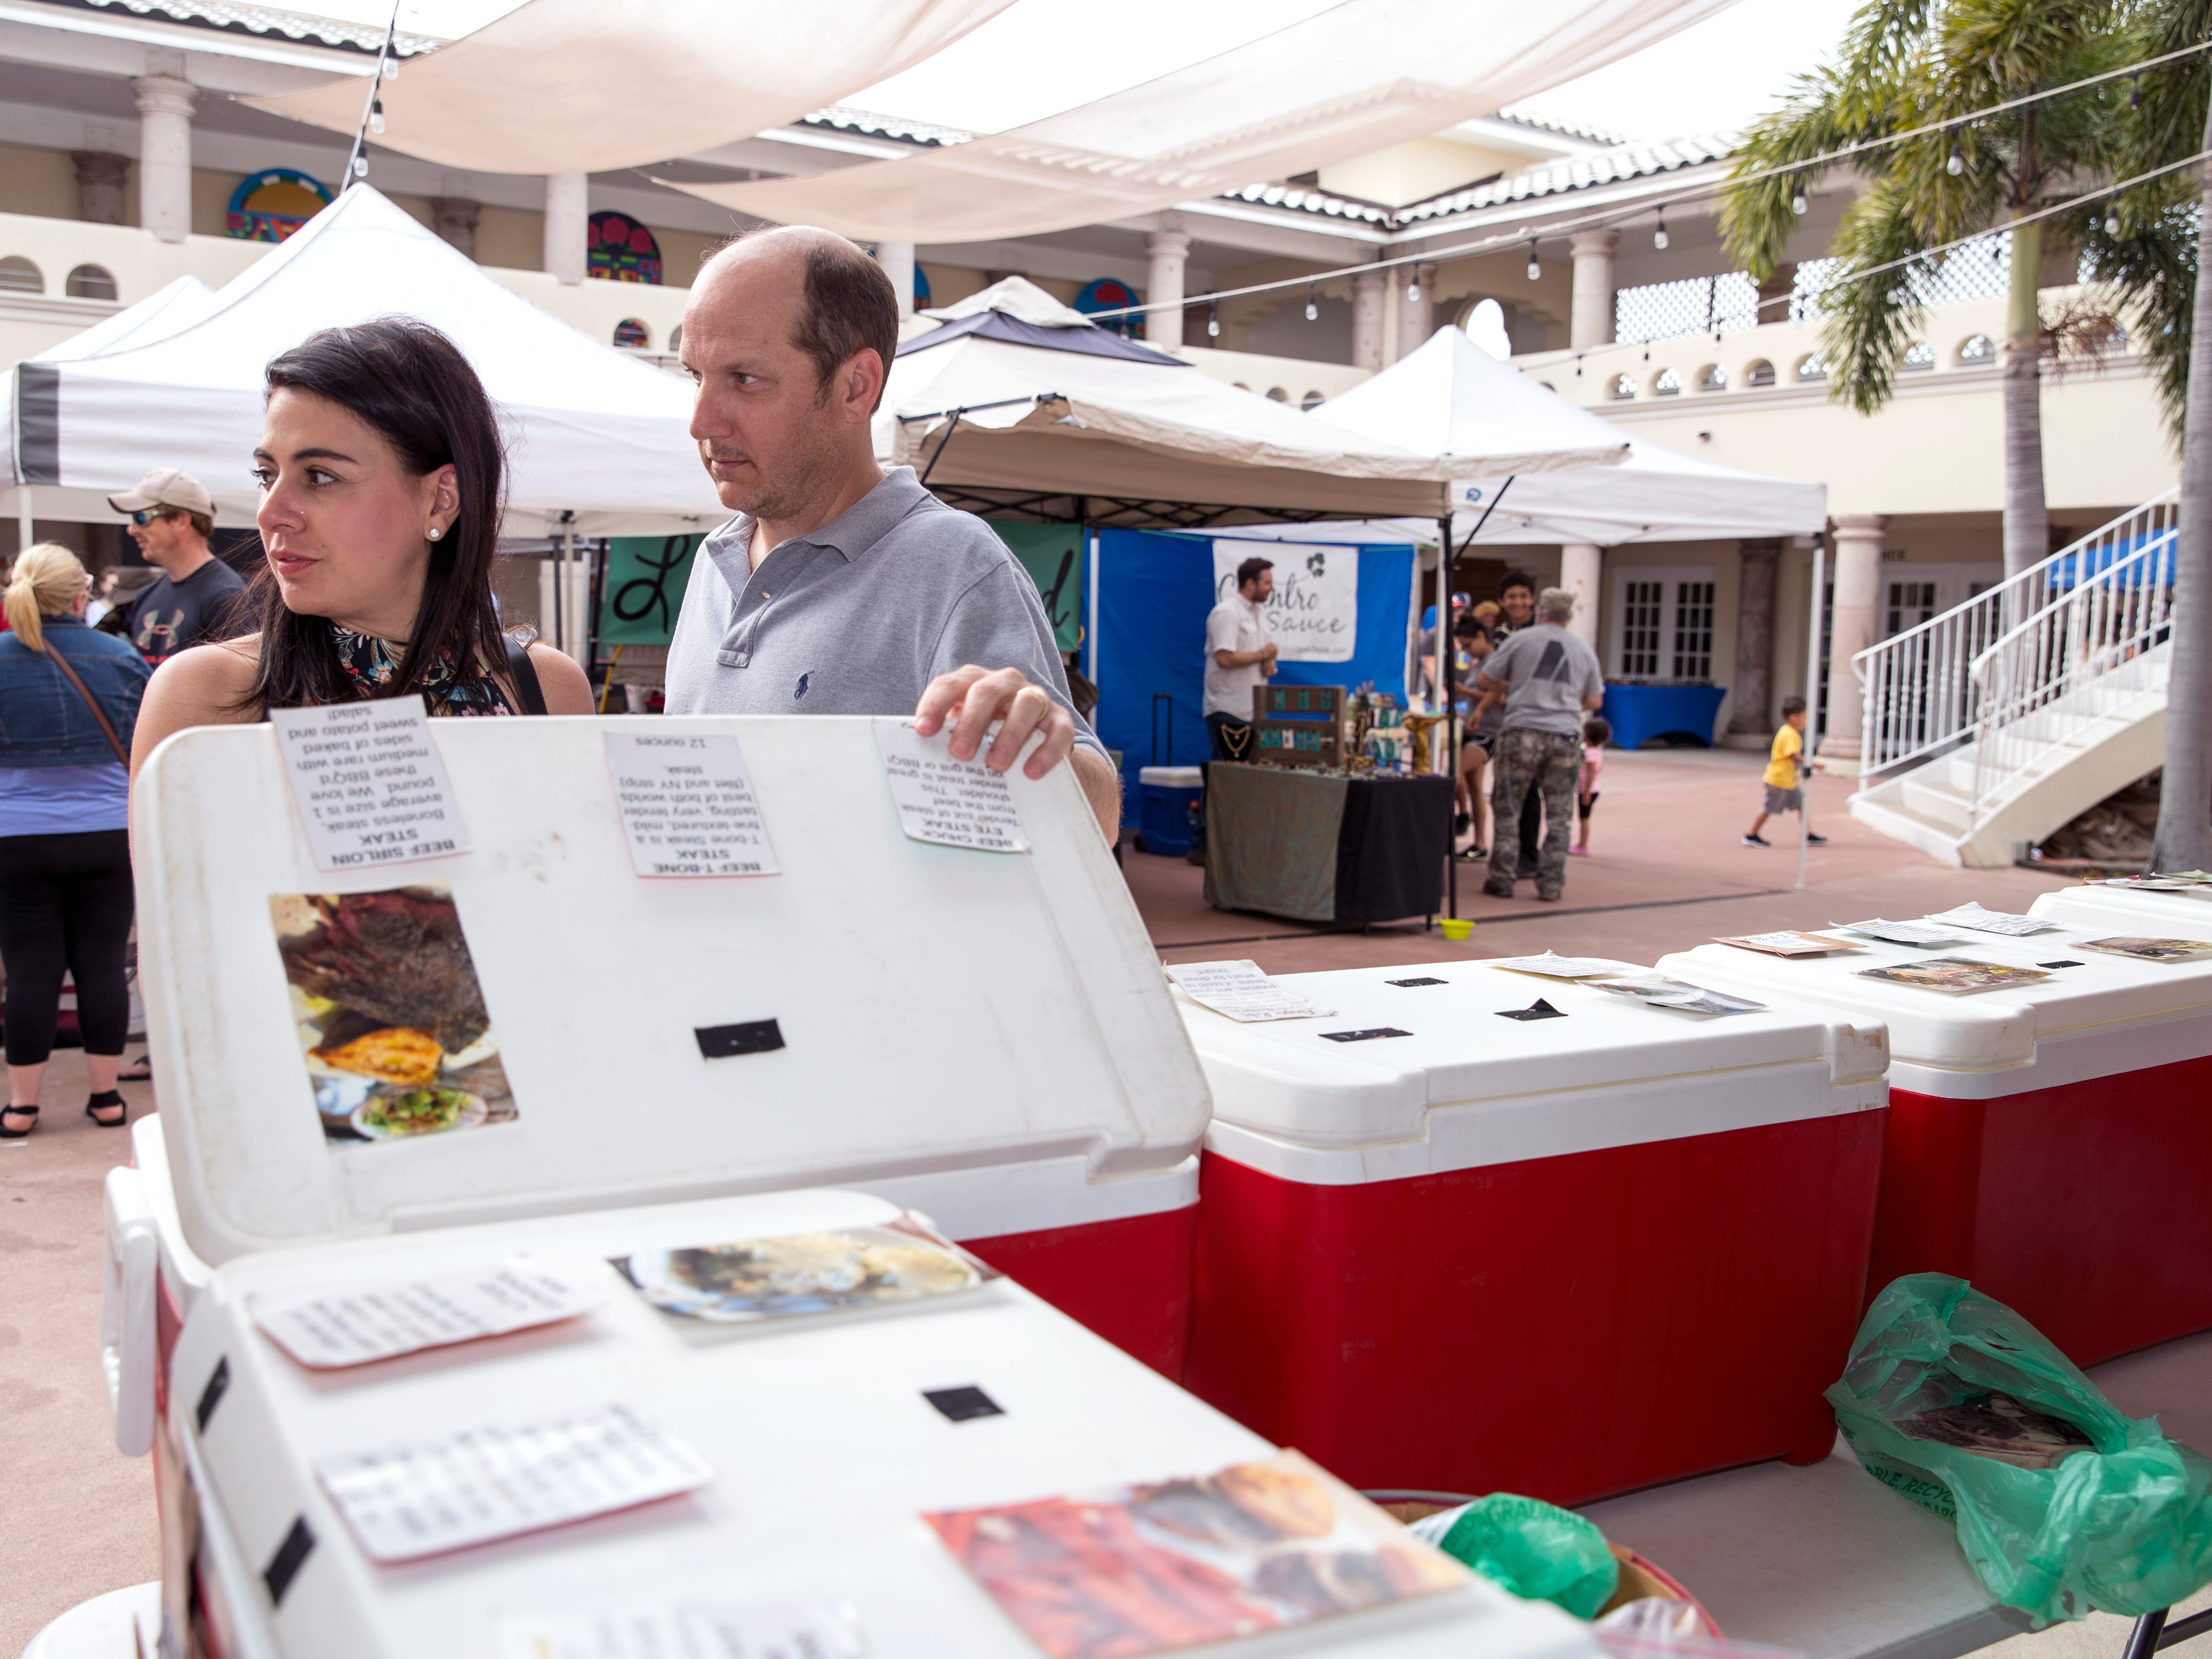 Margie Durst and her husband, Robby Durst, shop for grass-fed meat at Turkey Hollow Farm  at the Corpus Christi Downtown Farmers Market on Wednesday, April 24, 2019. It offers a variety of seasonal produce, grass fed beef, pastured raised poultry, prepared goods such as roasted coffee, sweets and preserves and baked goods. It is open weekly on Wednesday from 5 to 8 pm at 100 N. Shoreline Blvd.